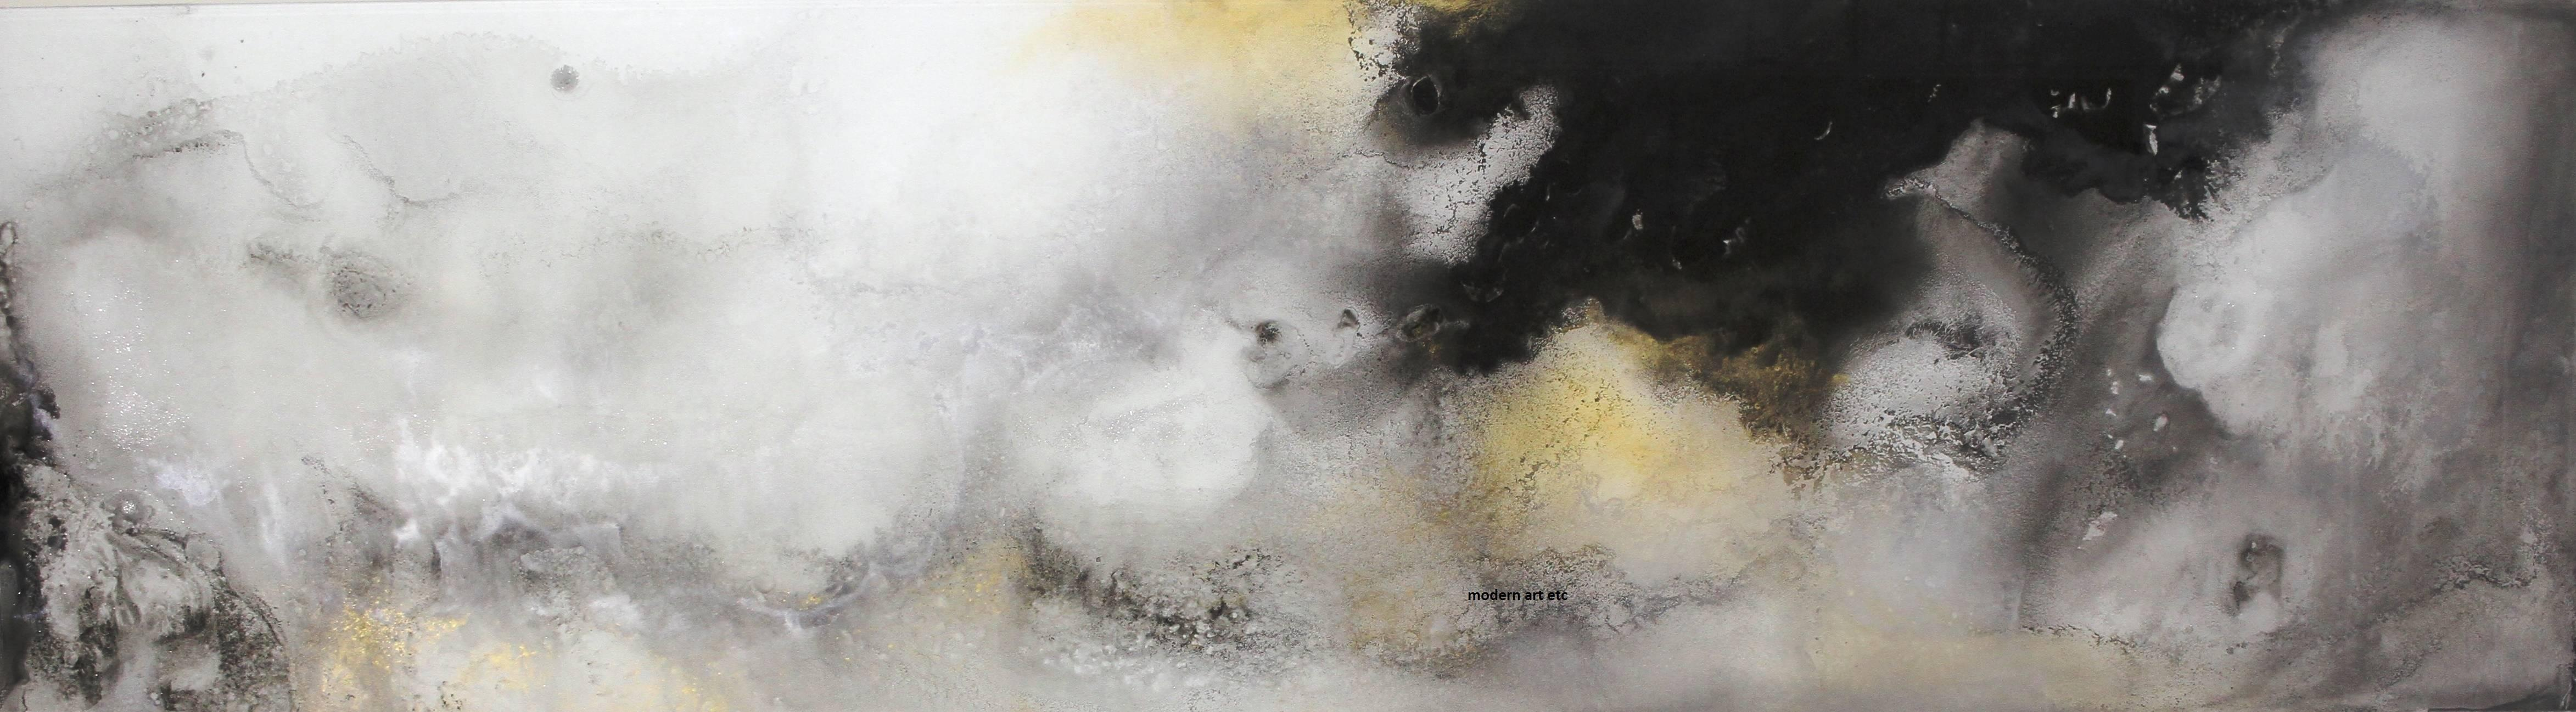 77af3184b MAE Curates - Ink on rice paper - Mountain and Water (contemporary chinese  ink), Painting For Sale at 1stdibs